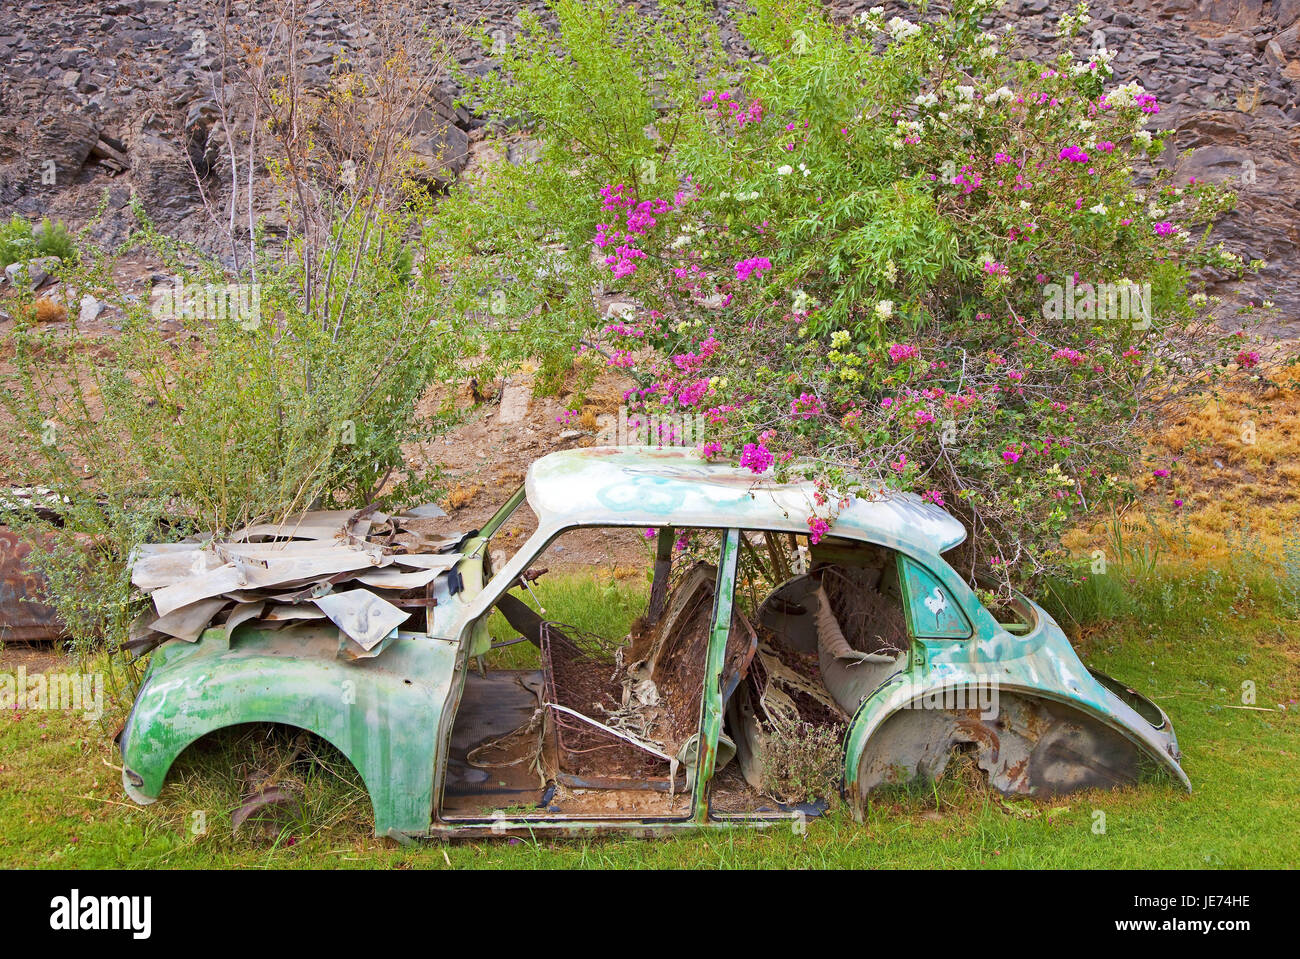 South Africa, Namaqualand, Vioolsdrif, scrap vehicle, scenery, stone inclination, ingrown, bushes, blossoms, pink, - Stock Image